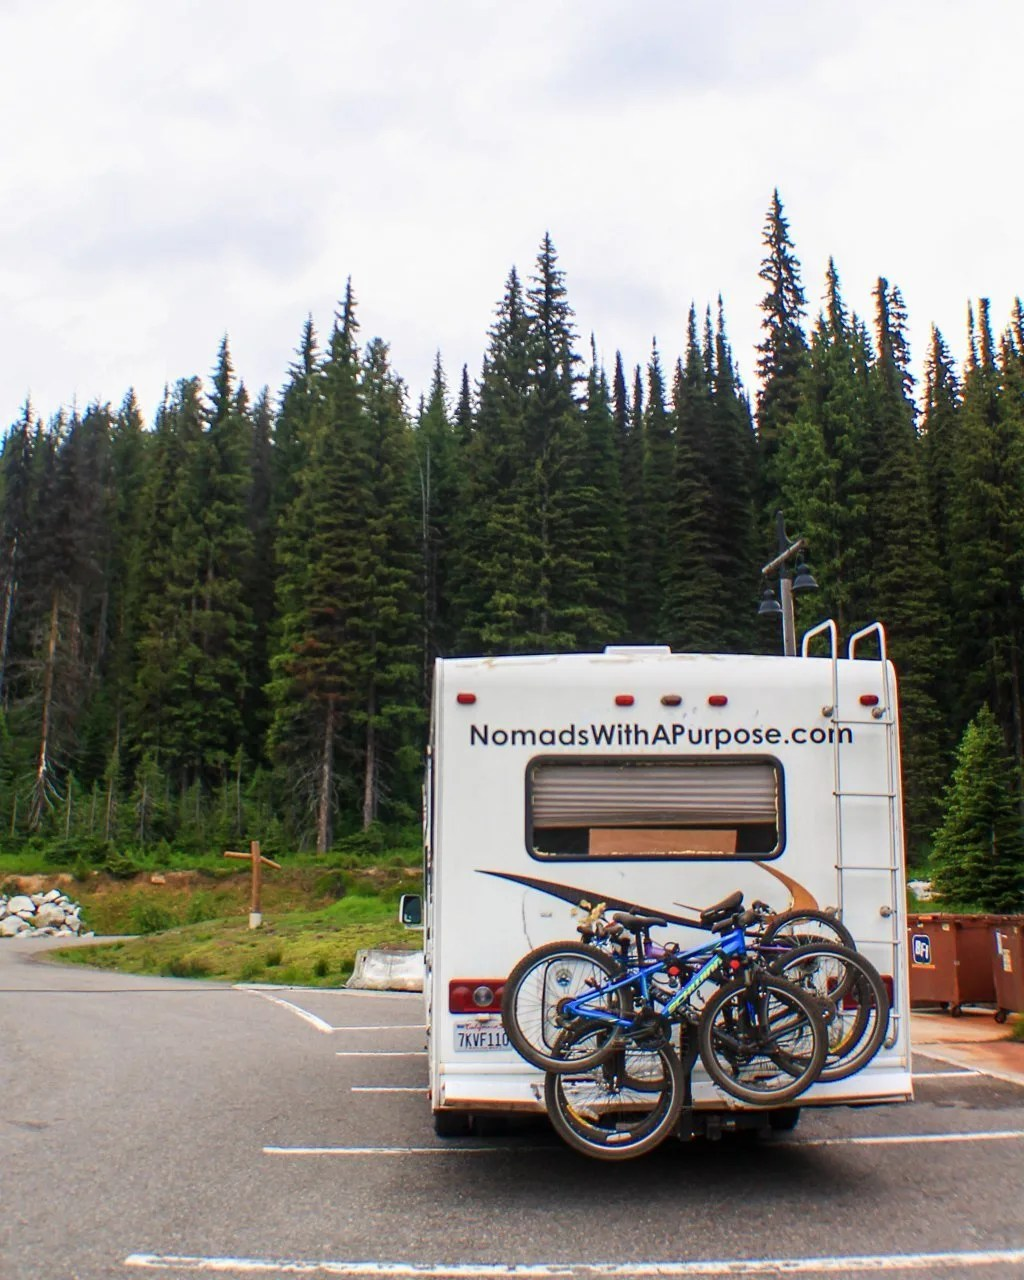 Rest Areas, How to Find Free Camping: A Complete Guide to Boondocking